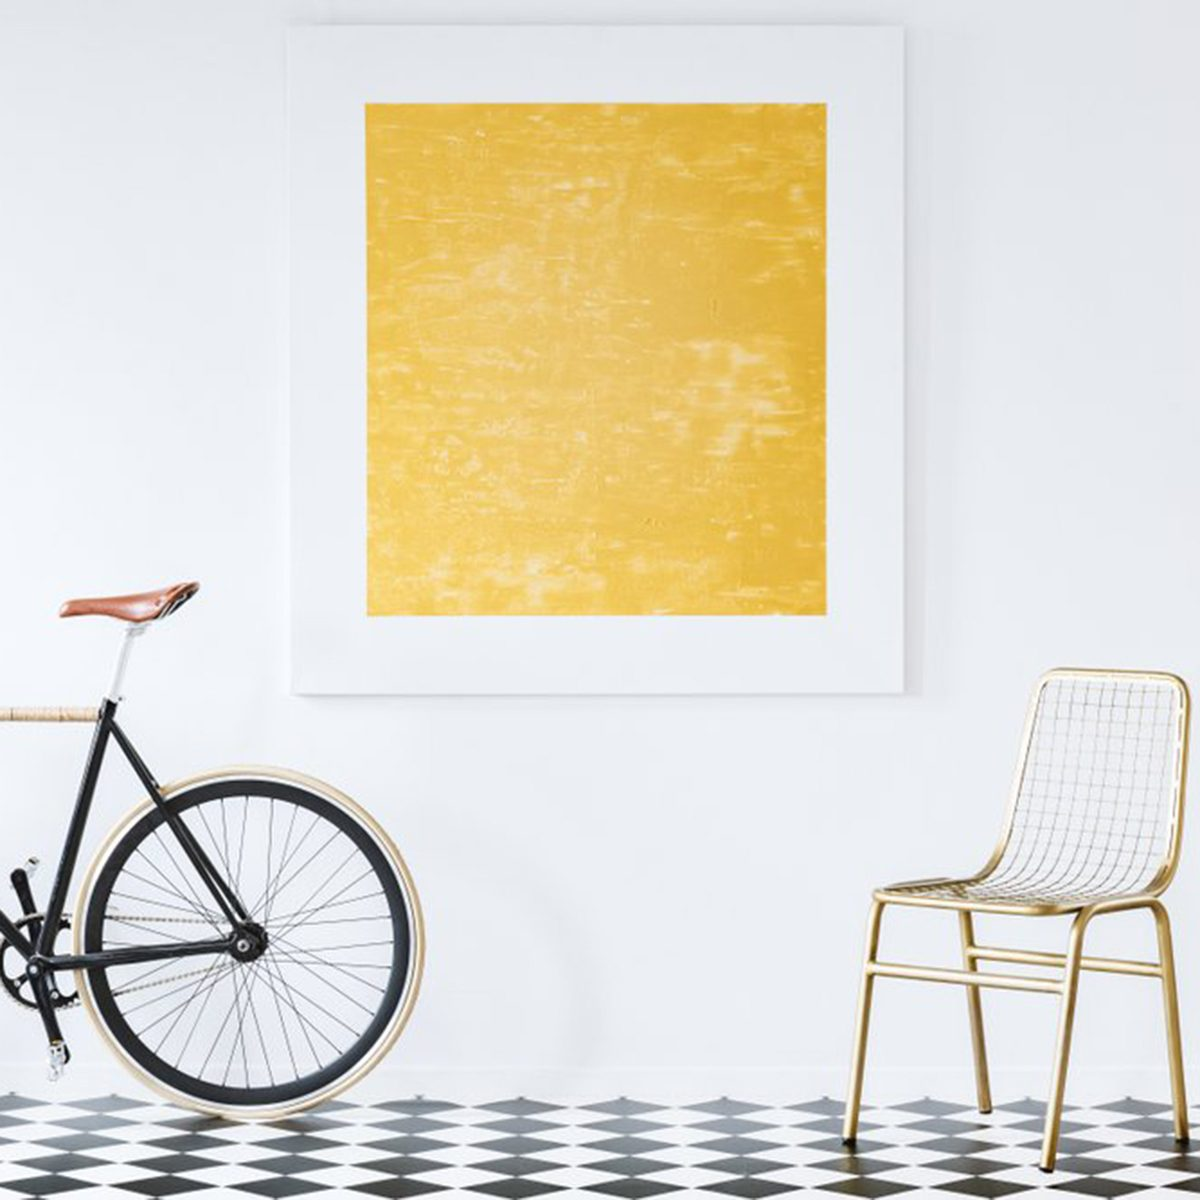 Fine art hanging on the wall with a bike and chair below it